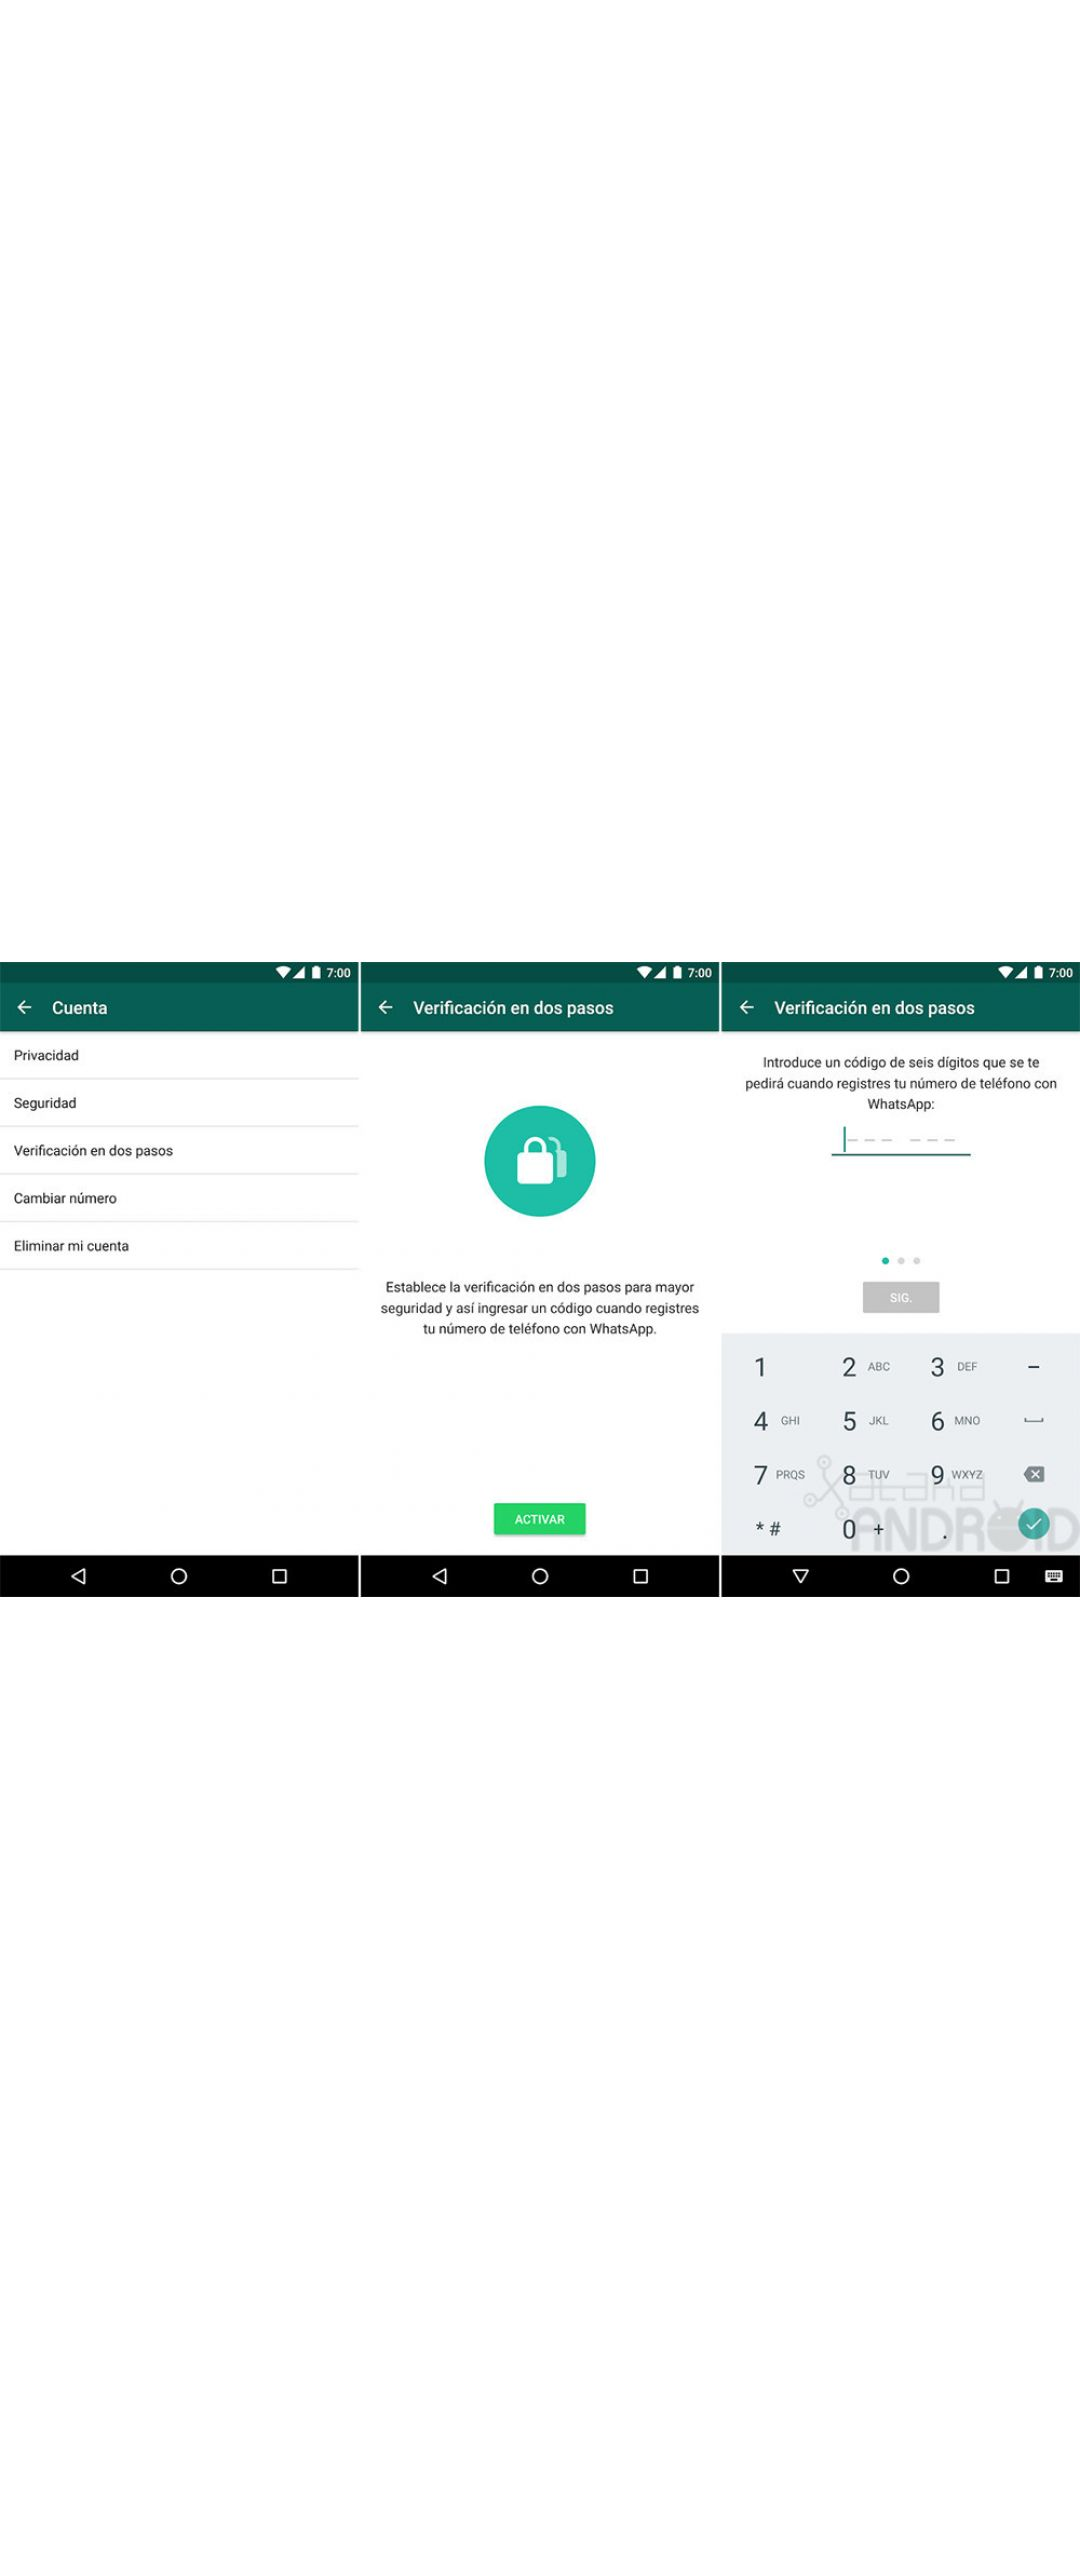 Beta de WhatsApp implementa la verificación de dos pasos